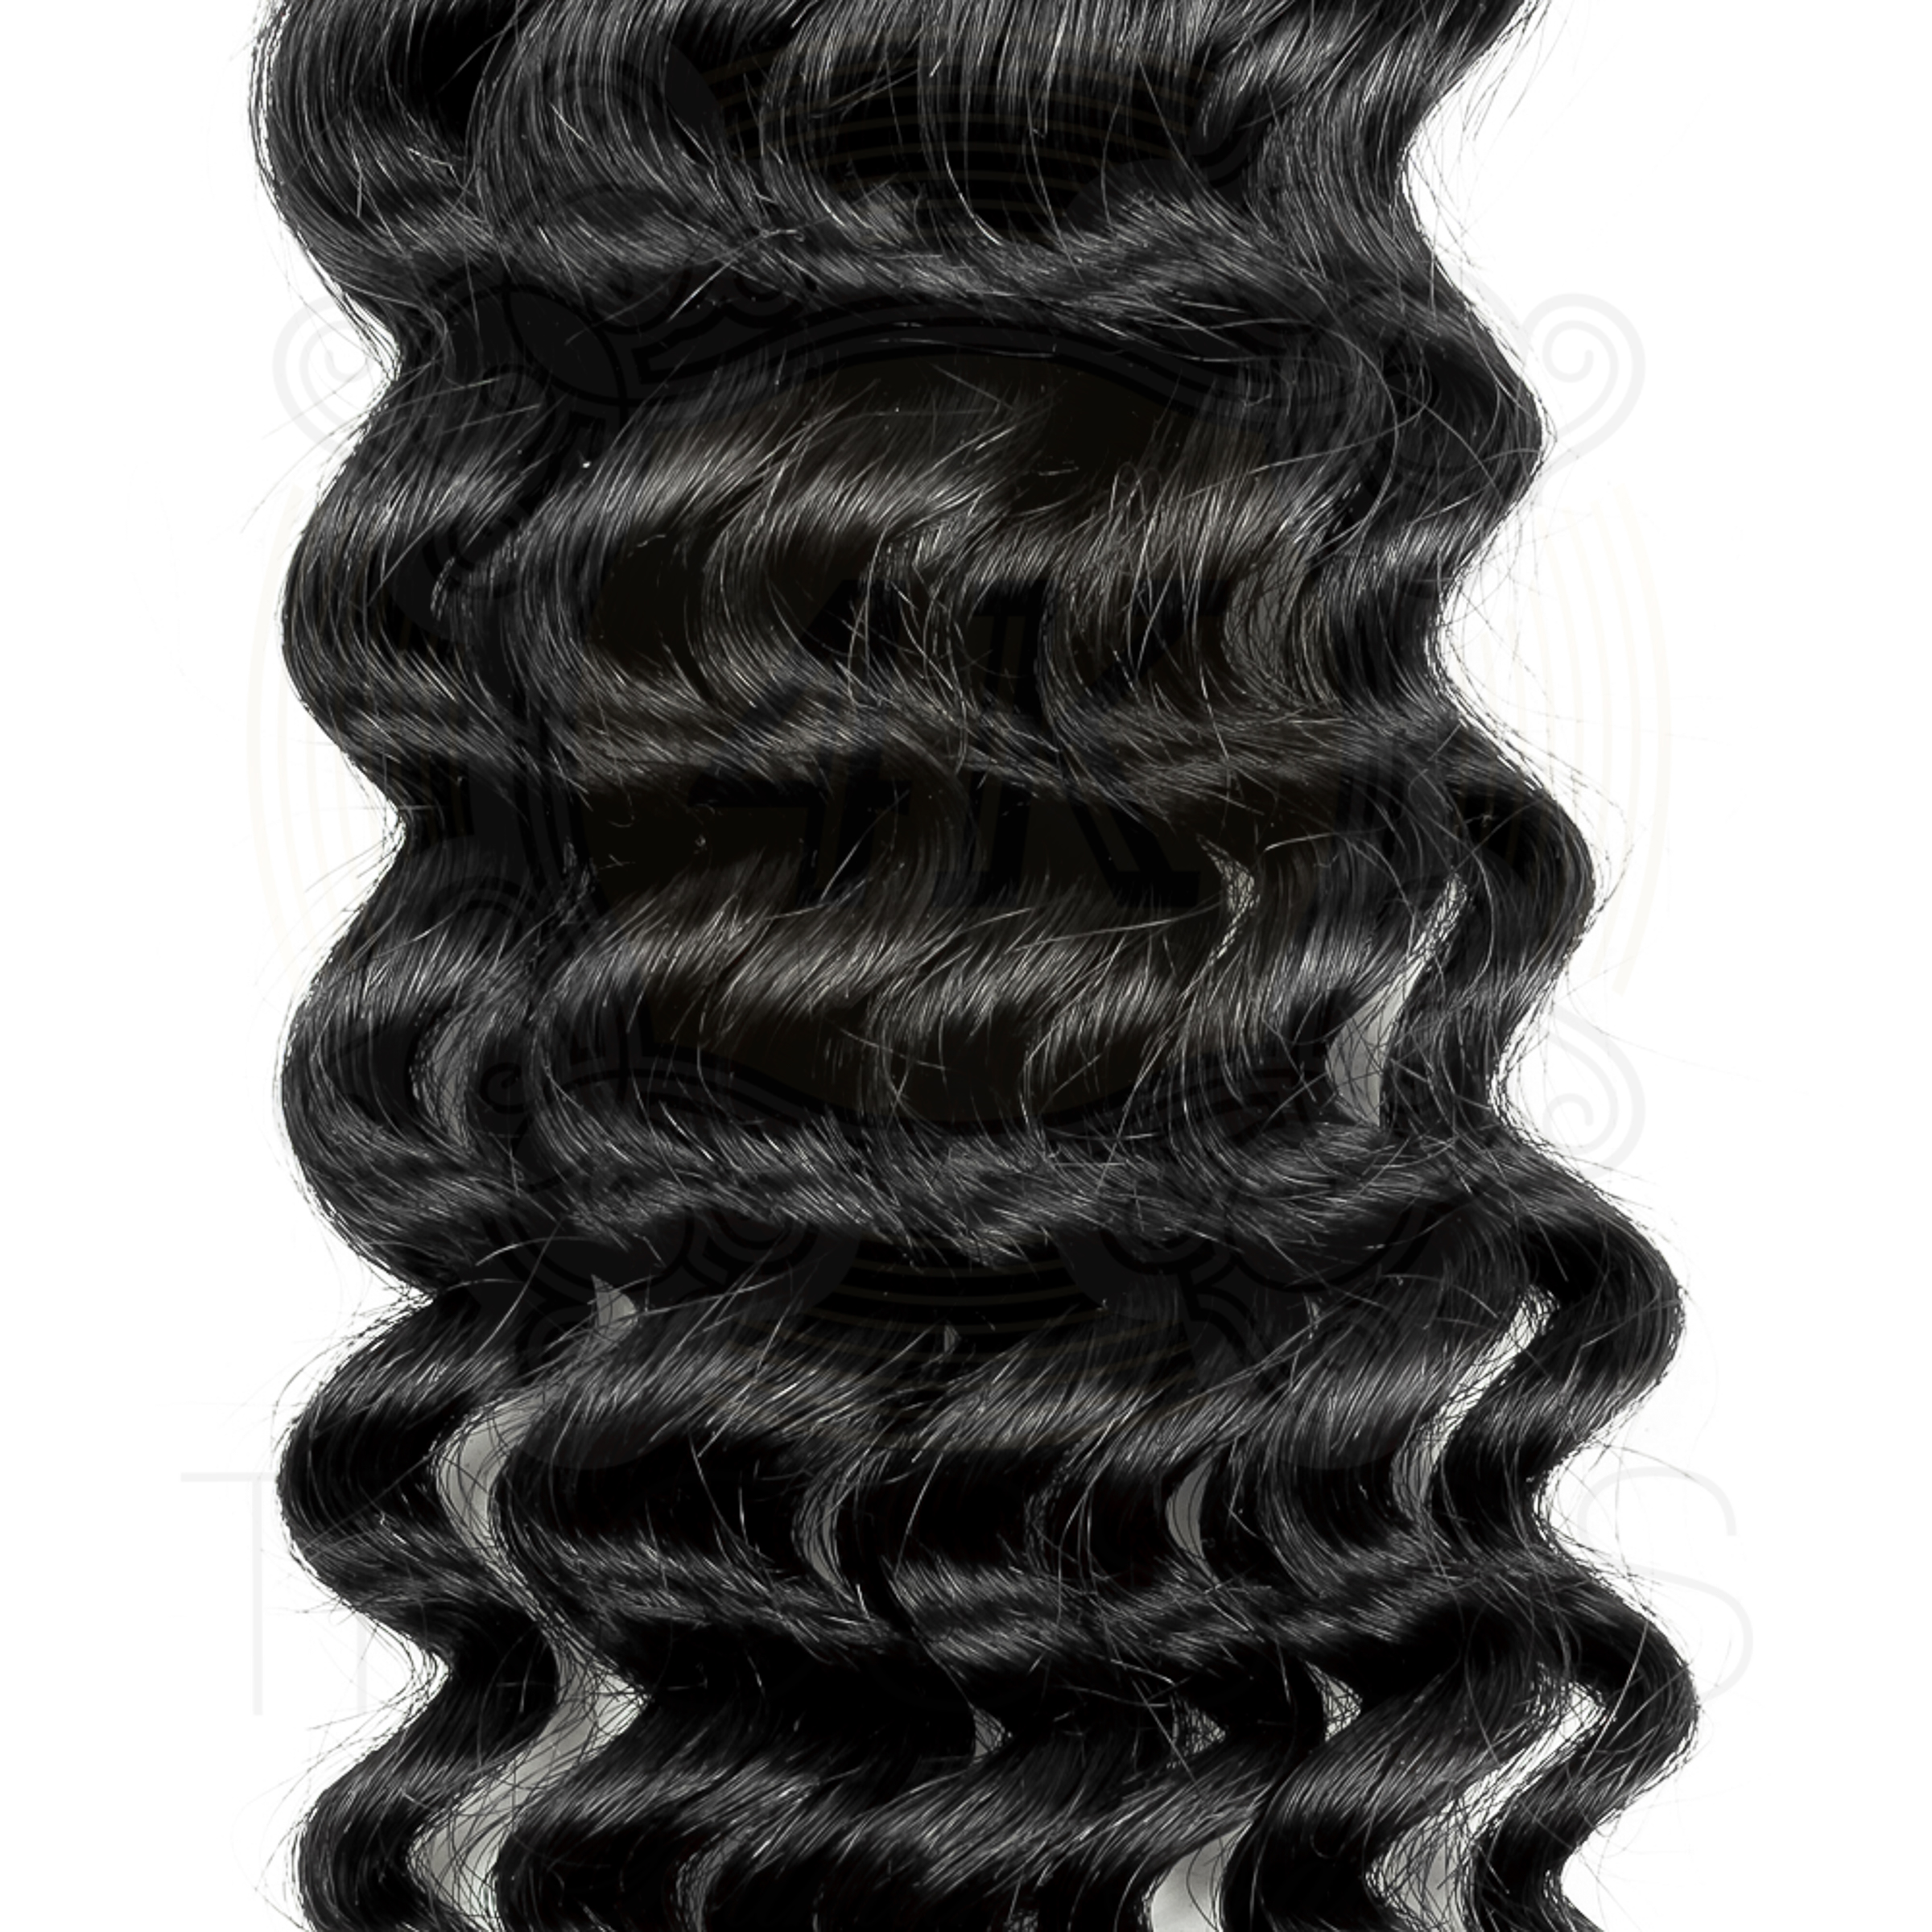 4K Tresses Branded Premium Full Unit 100% Indian Human Hair Lace Front or Full Lace - Deep Wave